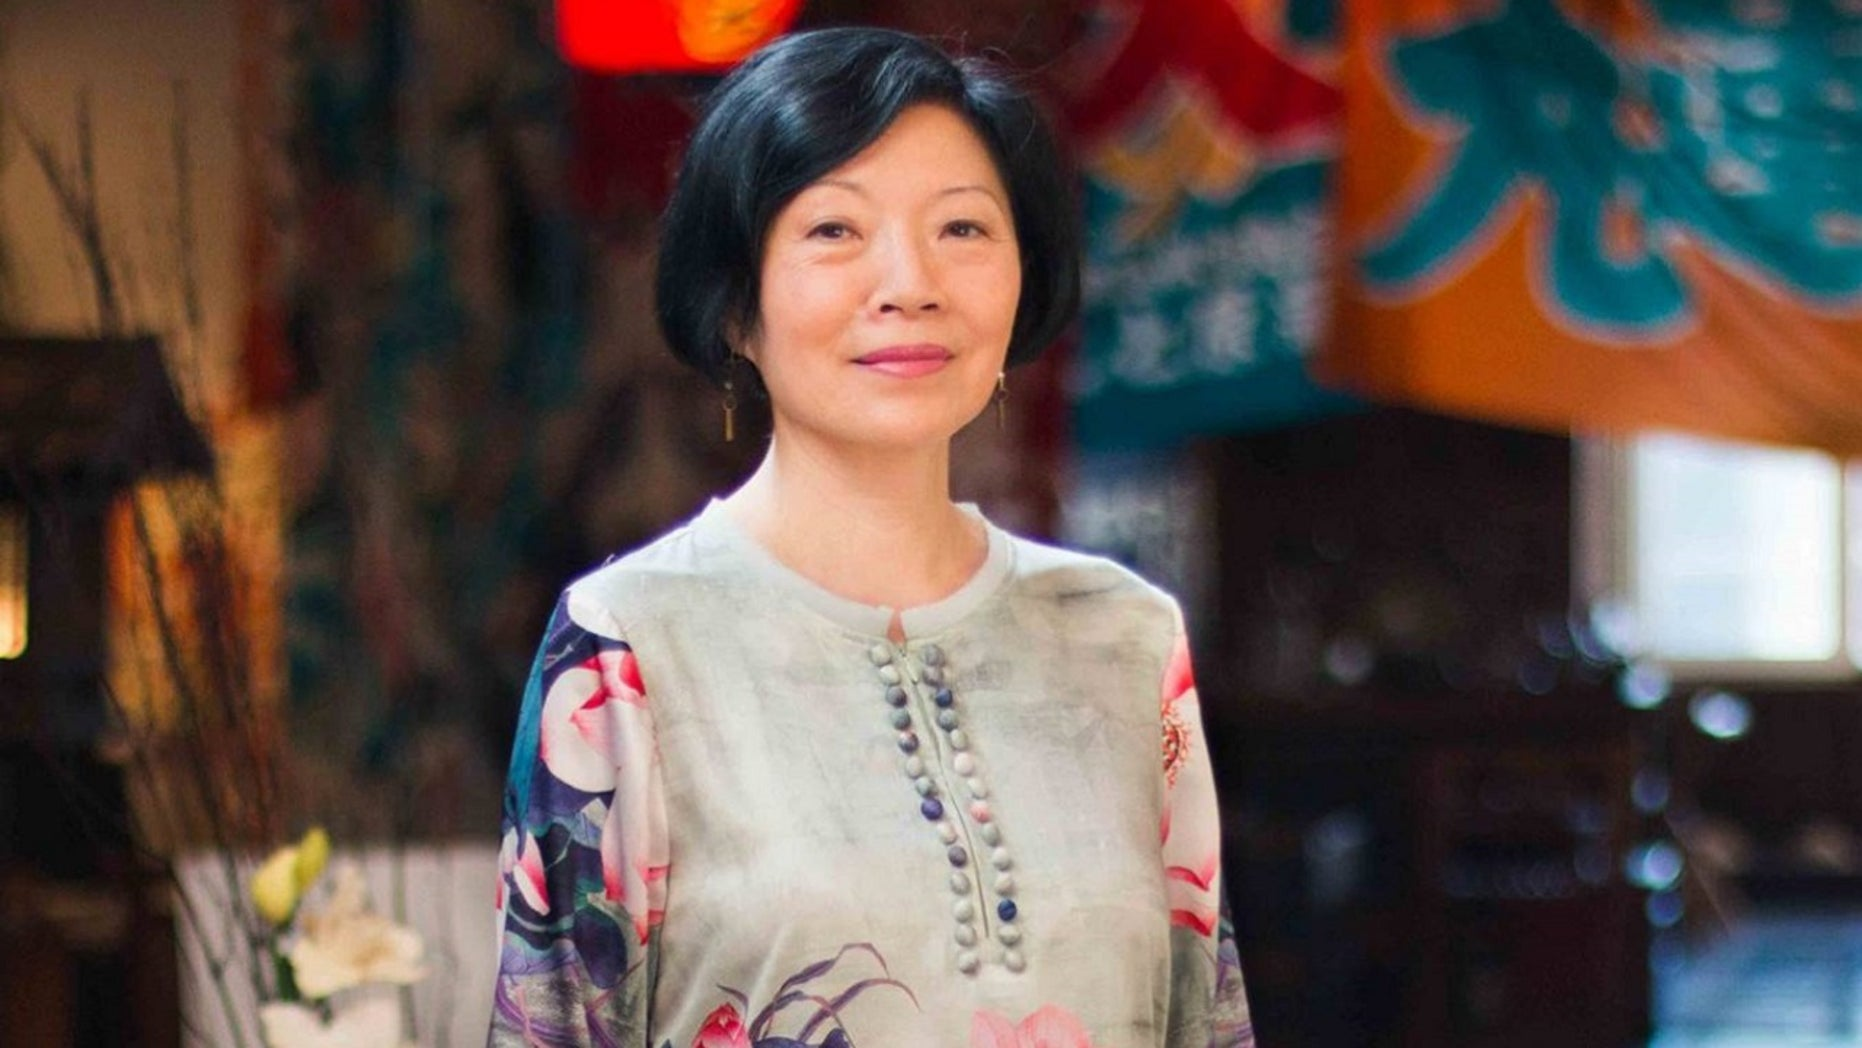 Actress Elizabeth Sung passed away Tuesday at the age of 63.